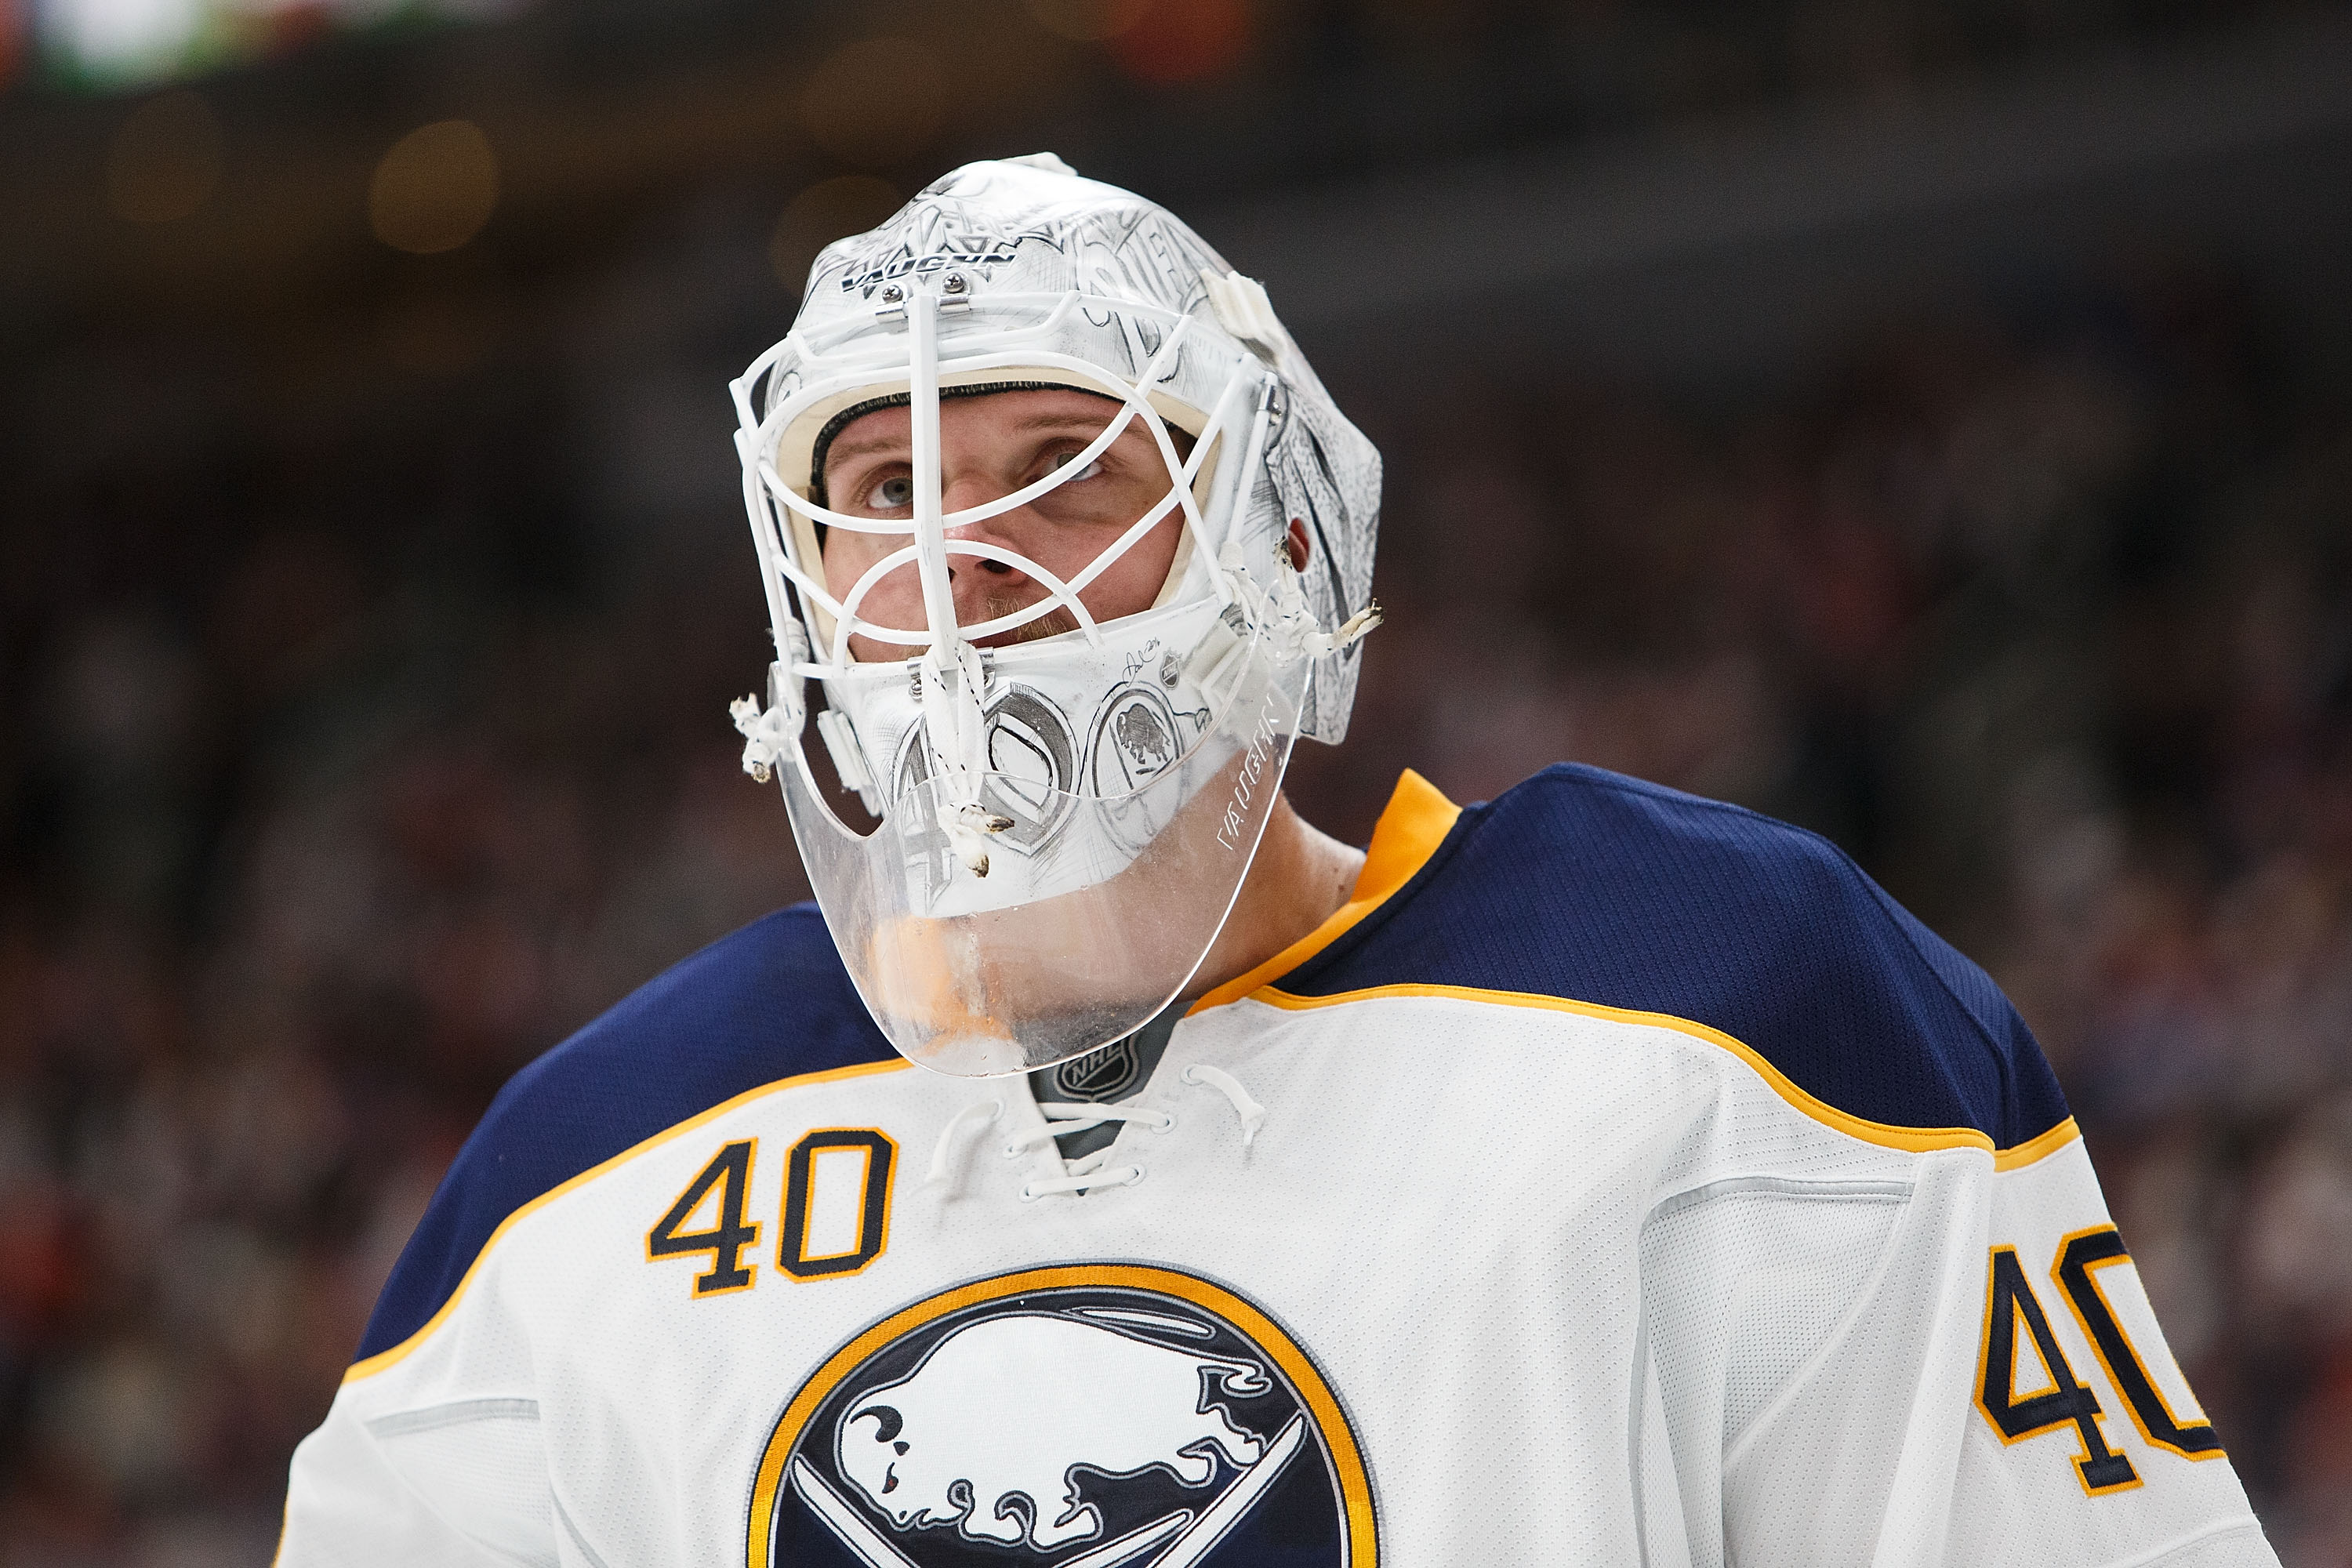 Sabres goalie Robin Lehner is 3-1 with a .961 save percentage in his last four starts. (Getty Images)